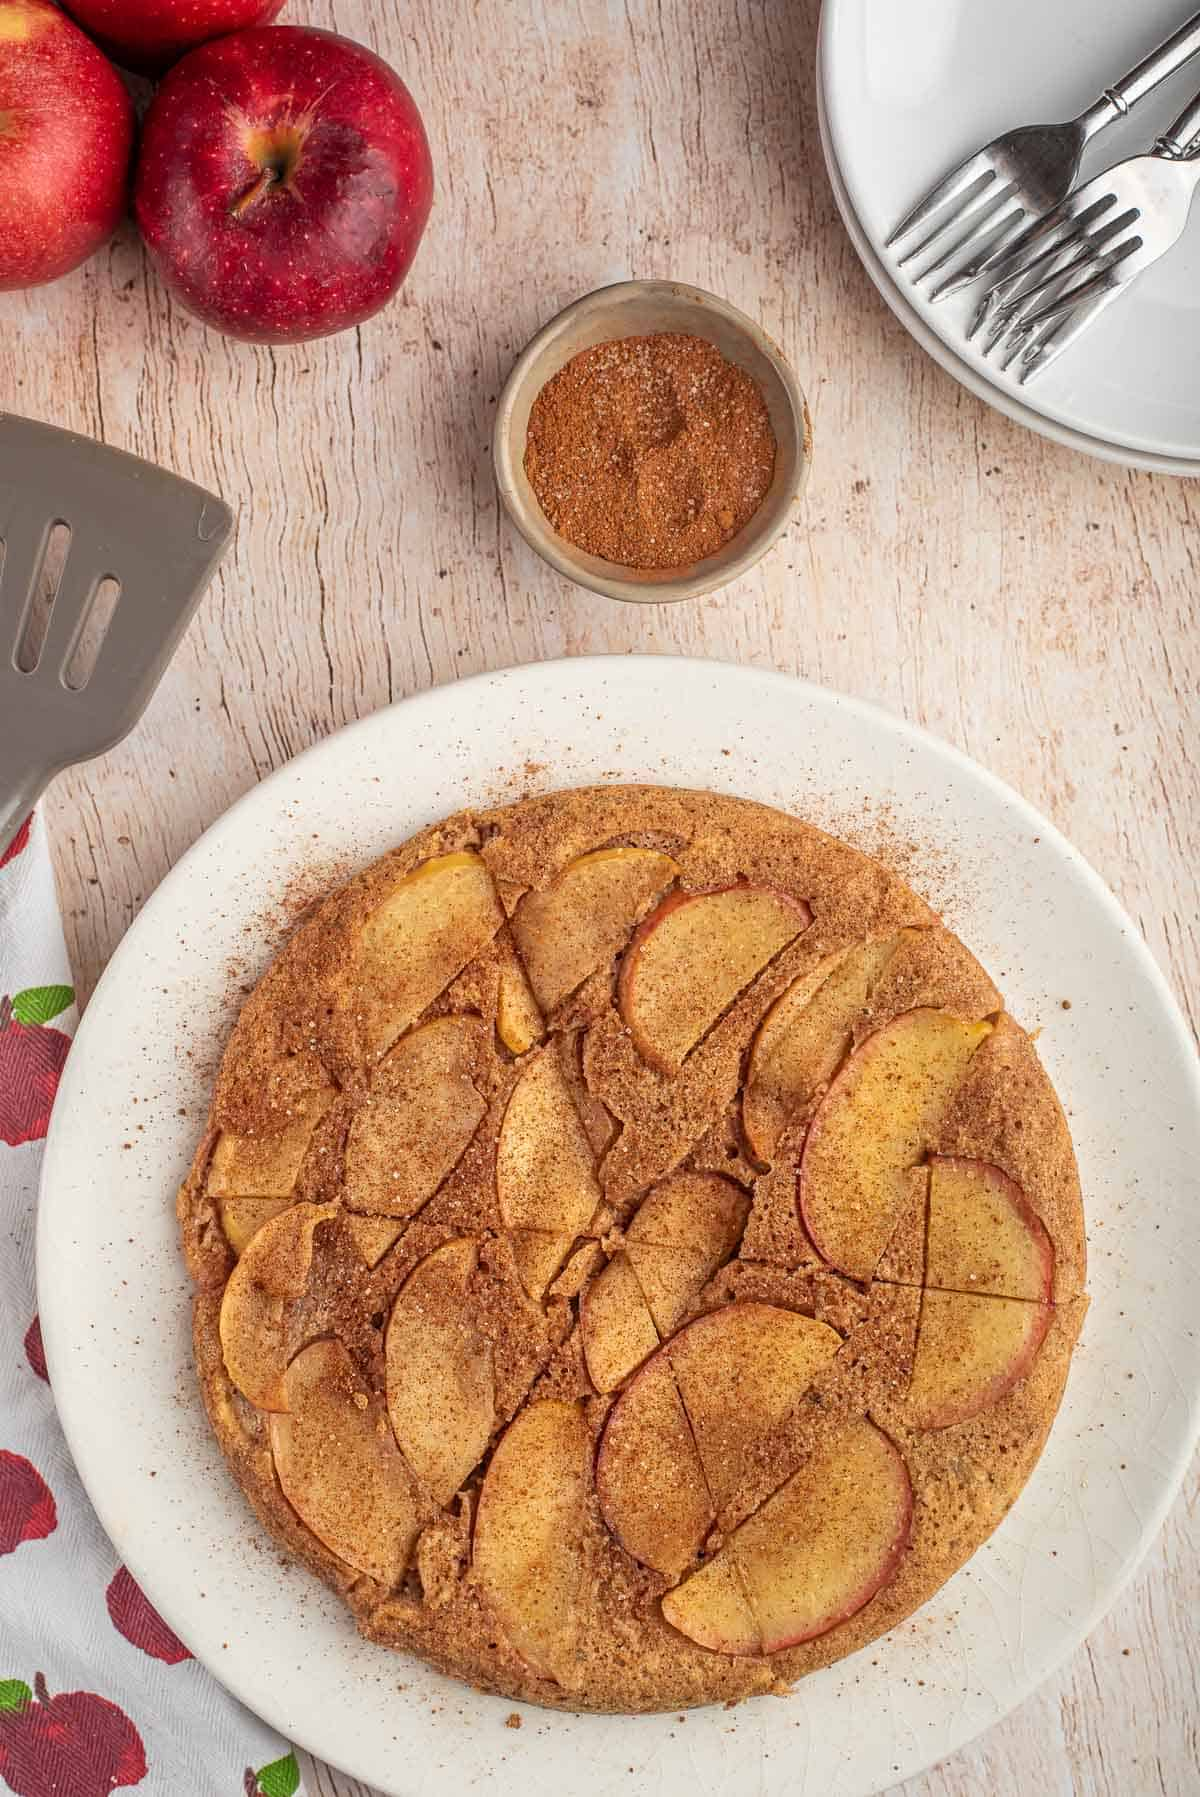 Overhead view of large apple pancake, cut into wedges.